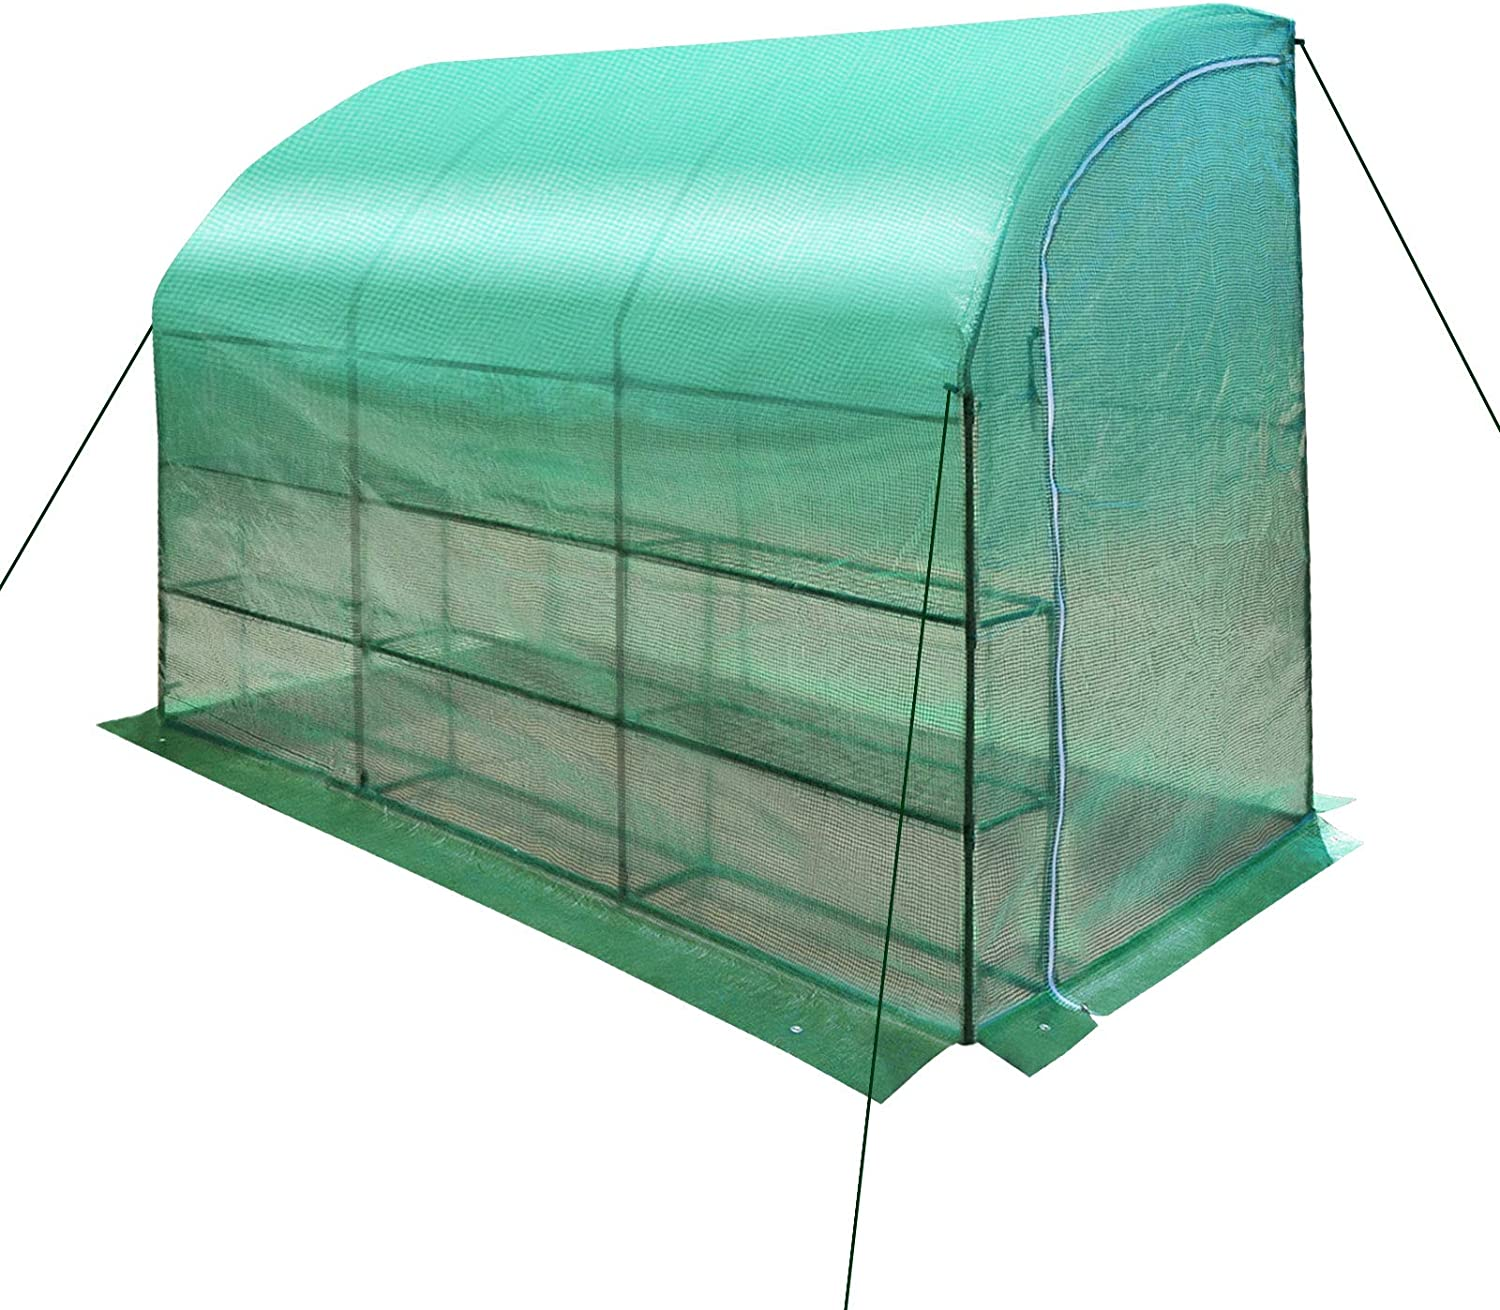 BenefitUSA New Max 71% OFF Large Walk-in Wall w 3 New item Tiers Greenhouse 10x5x7'H